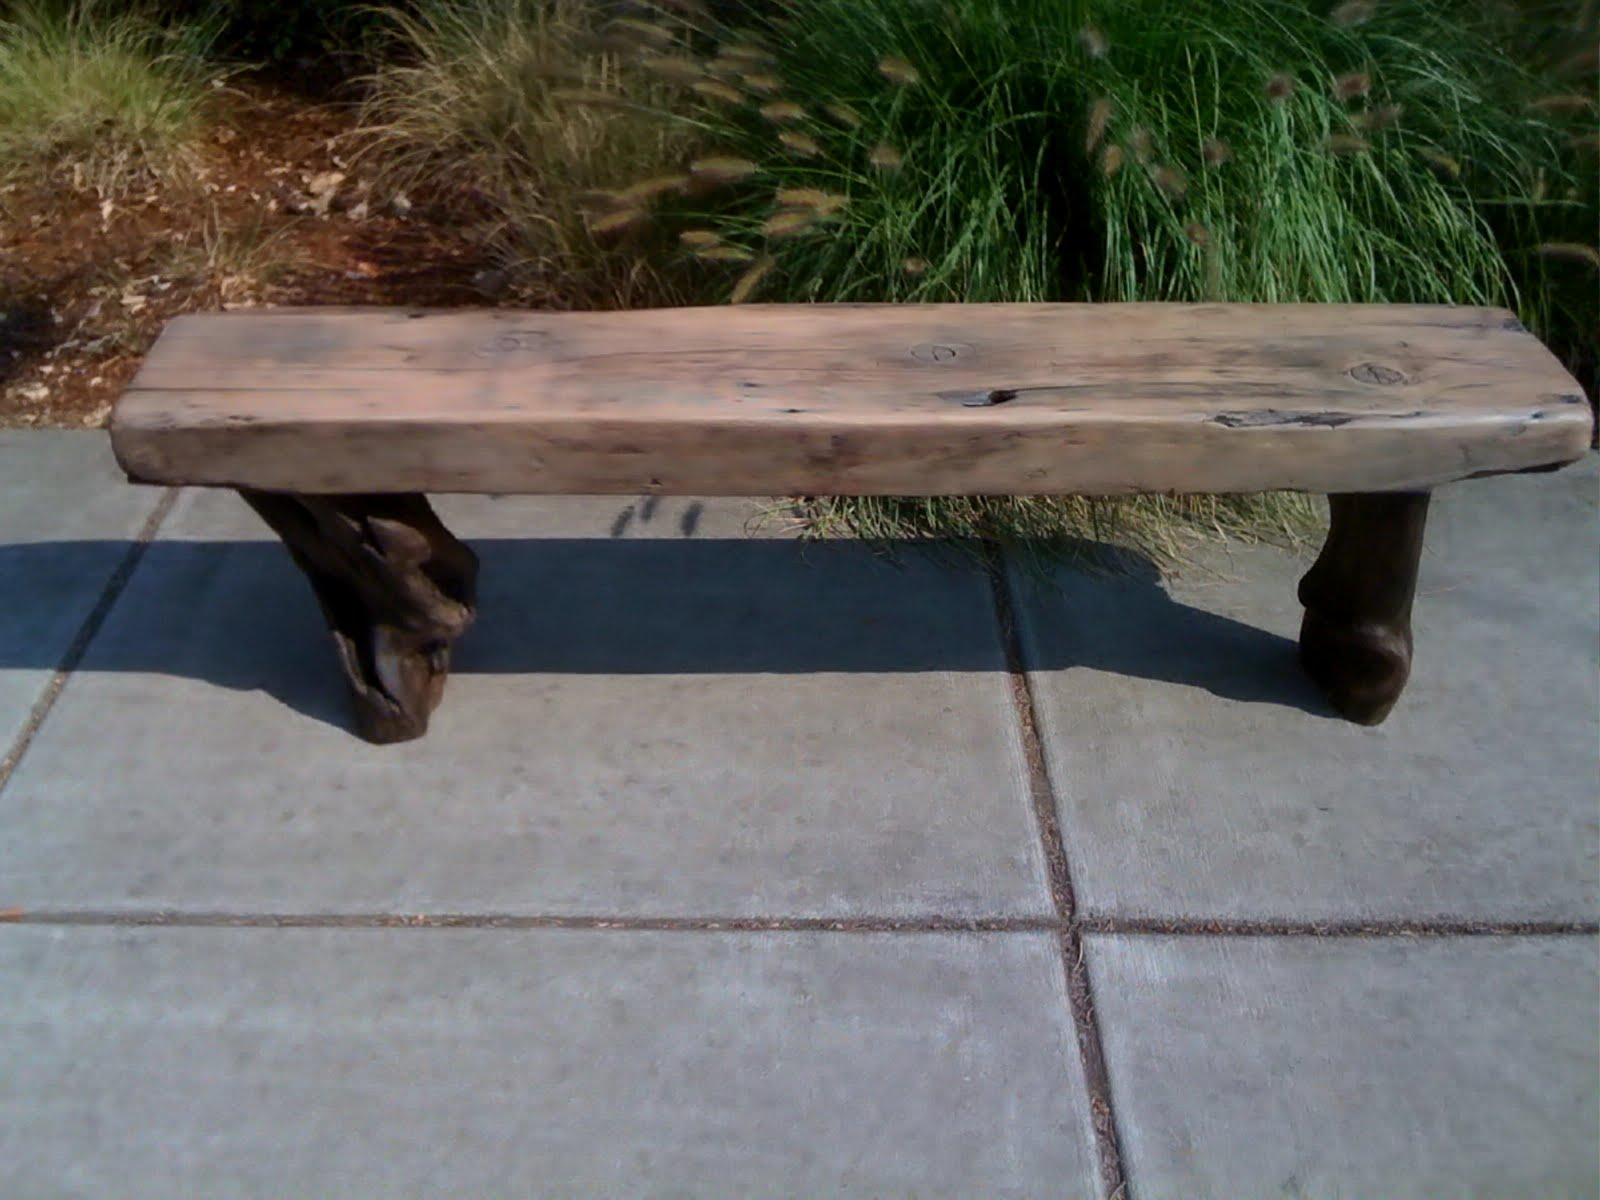 market indiana southern driftwood porch garden il bench plank etsy crafted reclaimed wood hand salvaged decor home